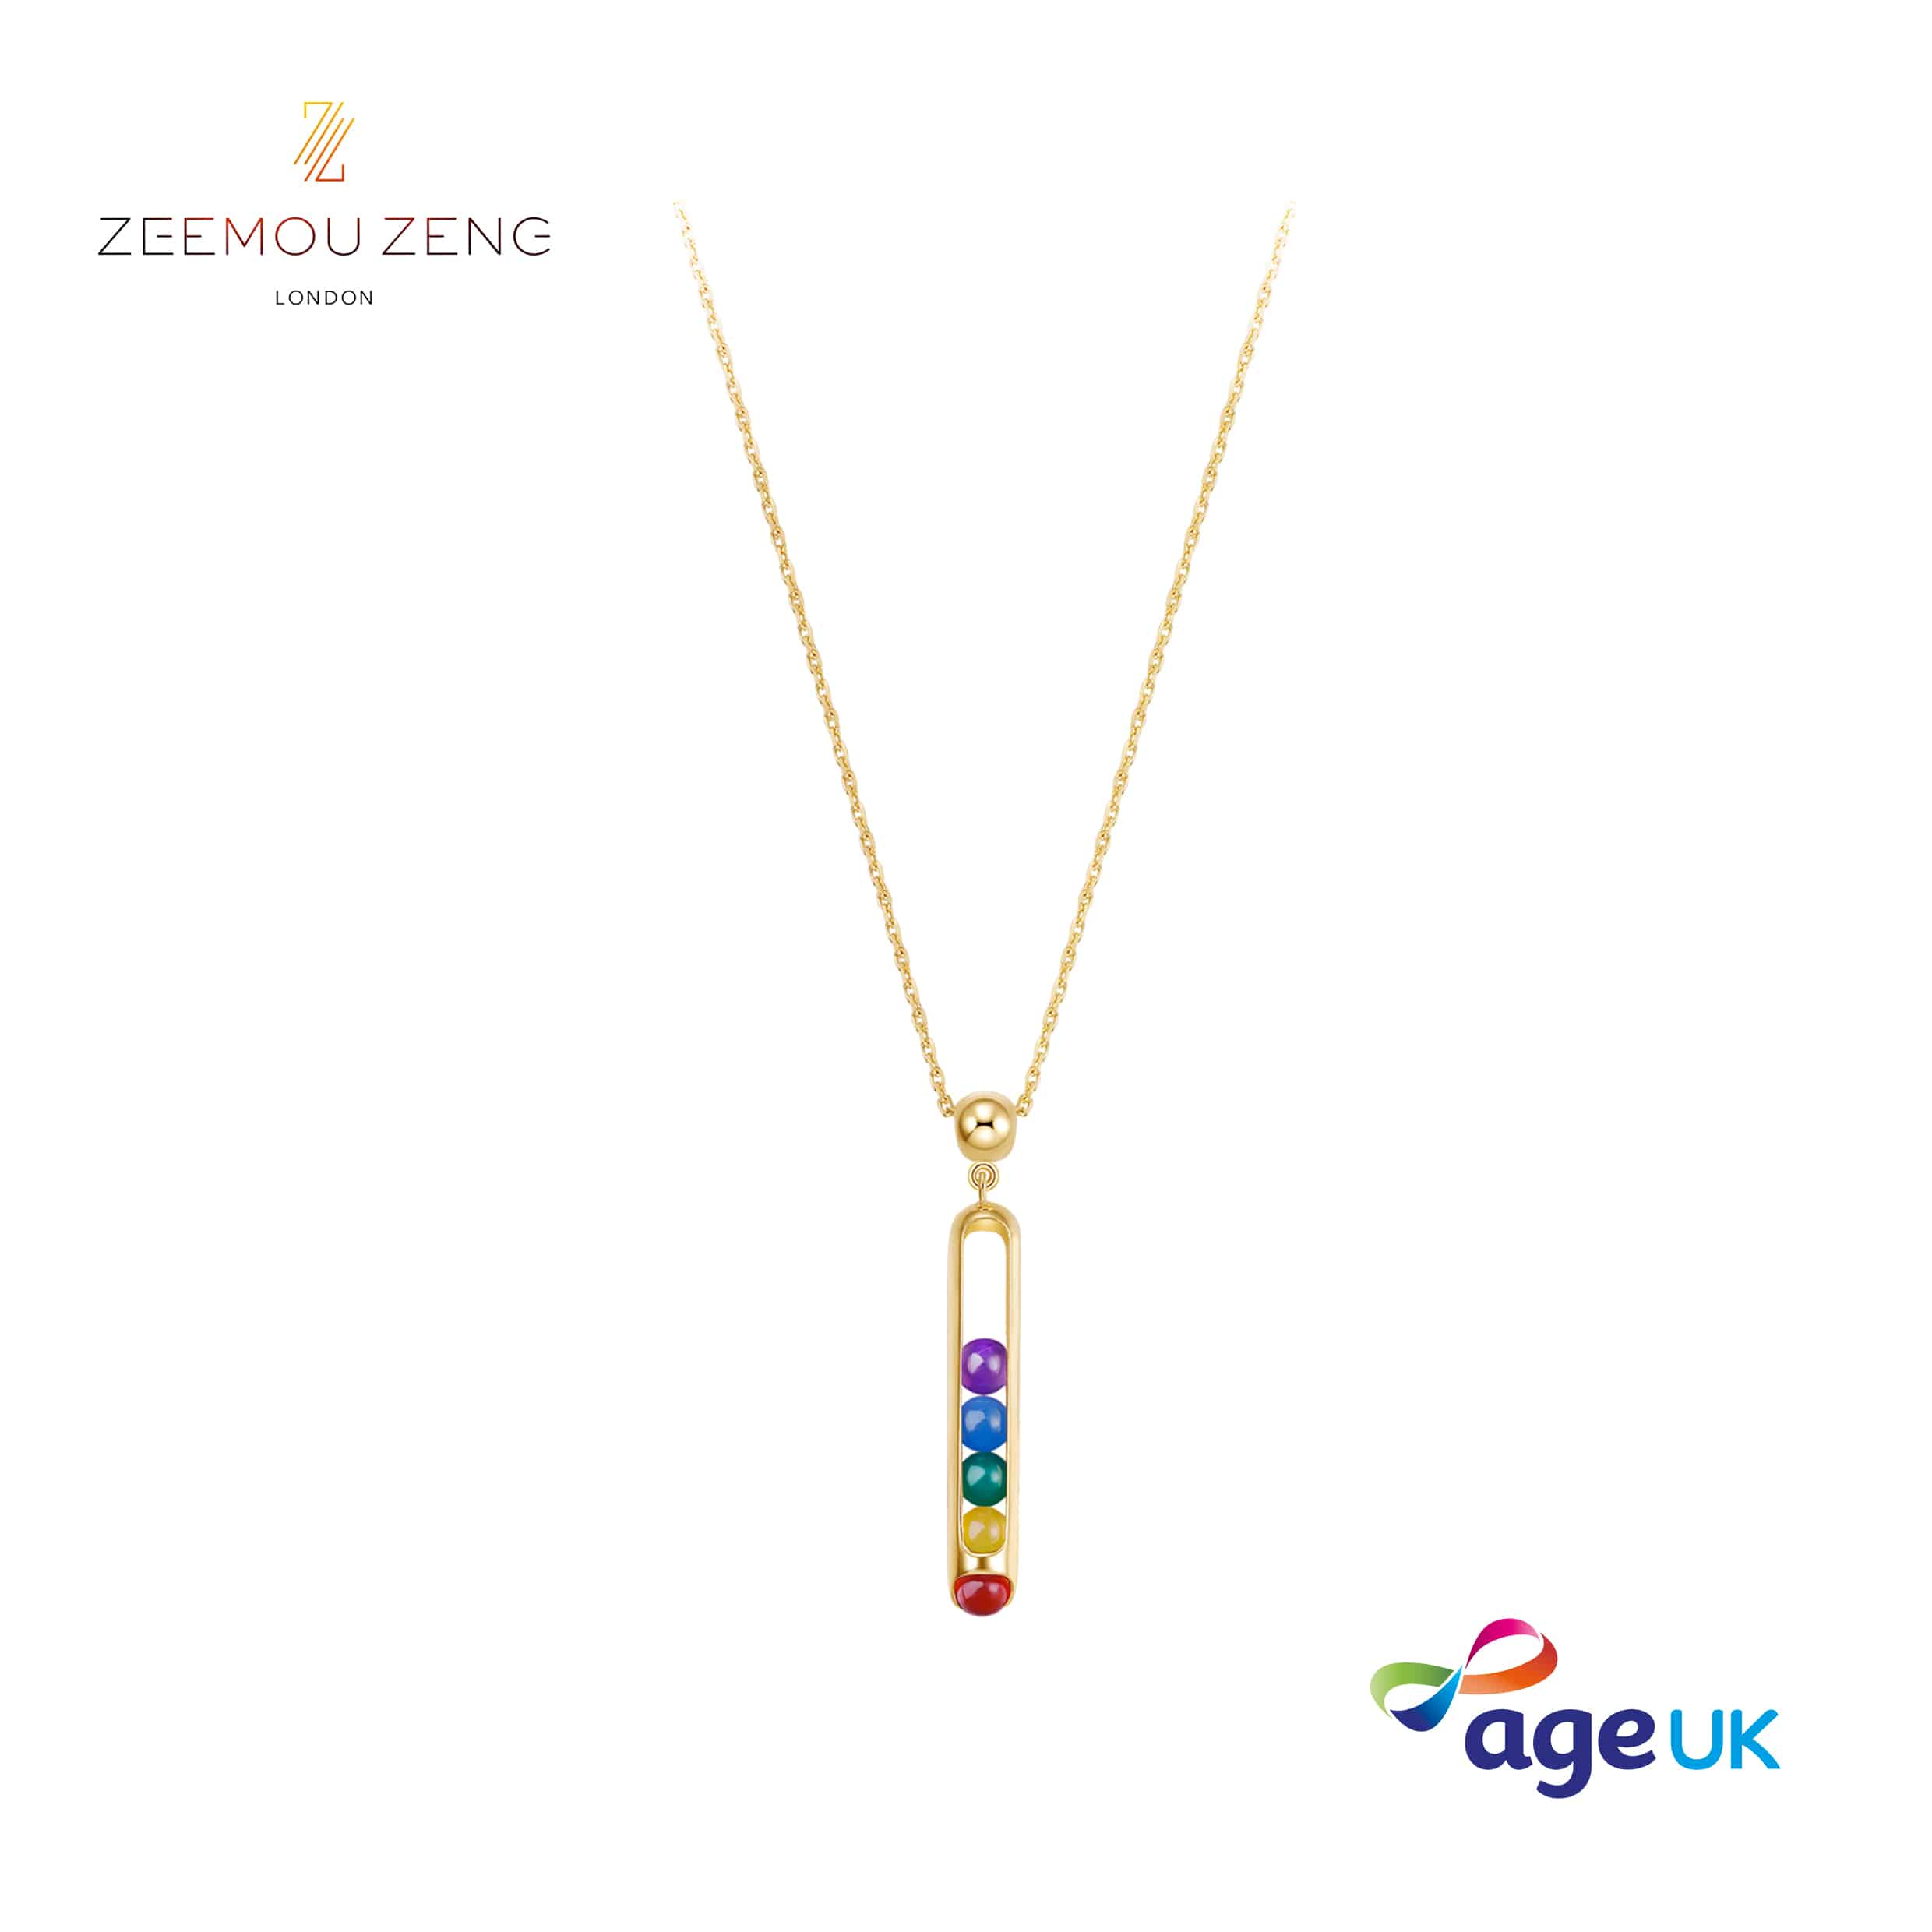 Zeemou Zeng creates limited edition Melody Rainbow necklace to support Age UK appeal